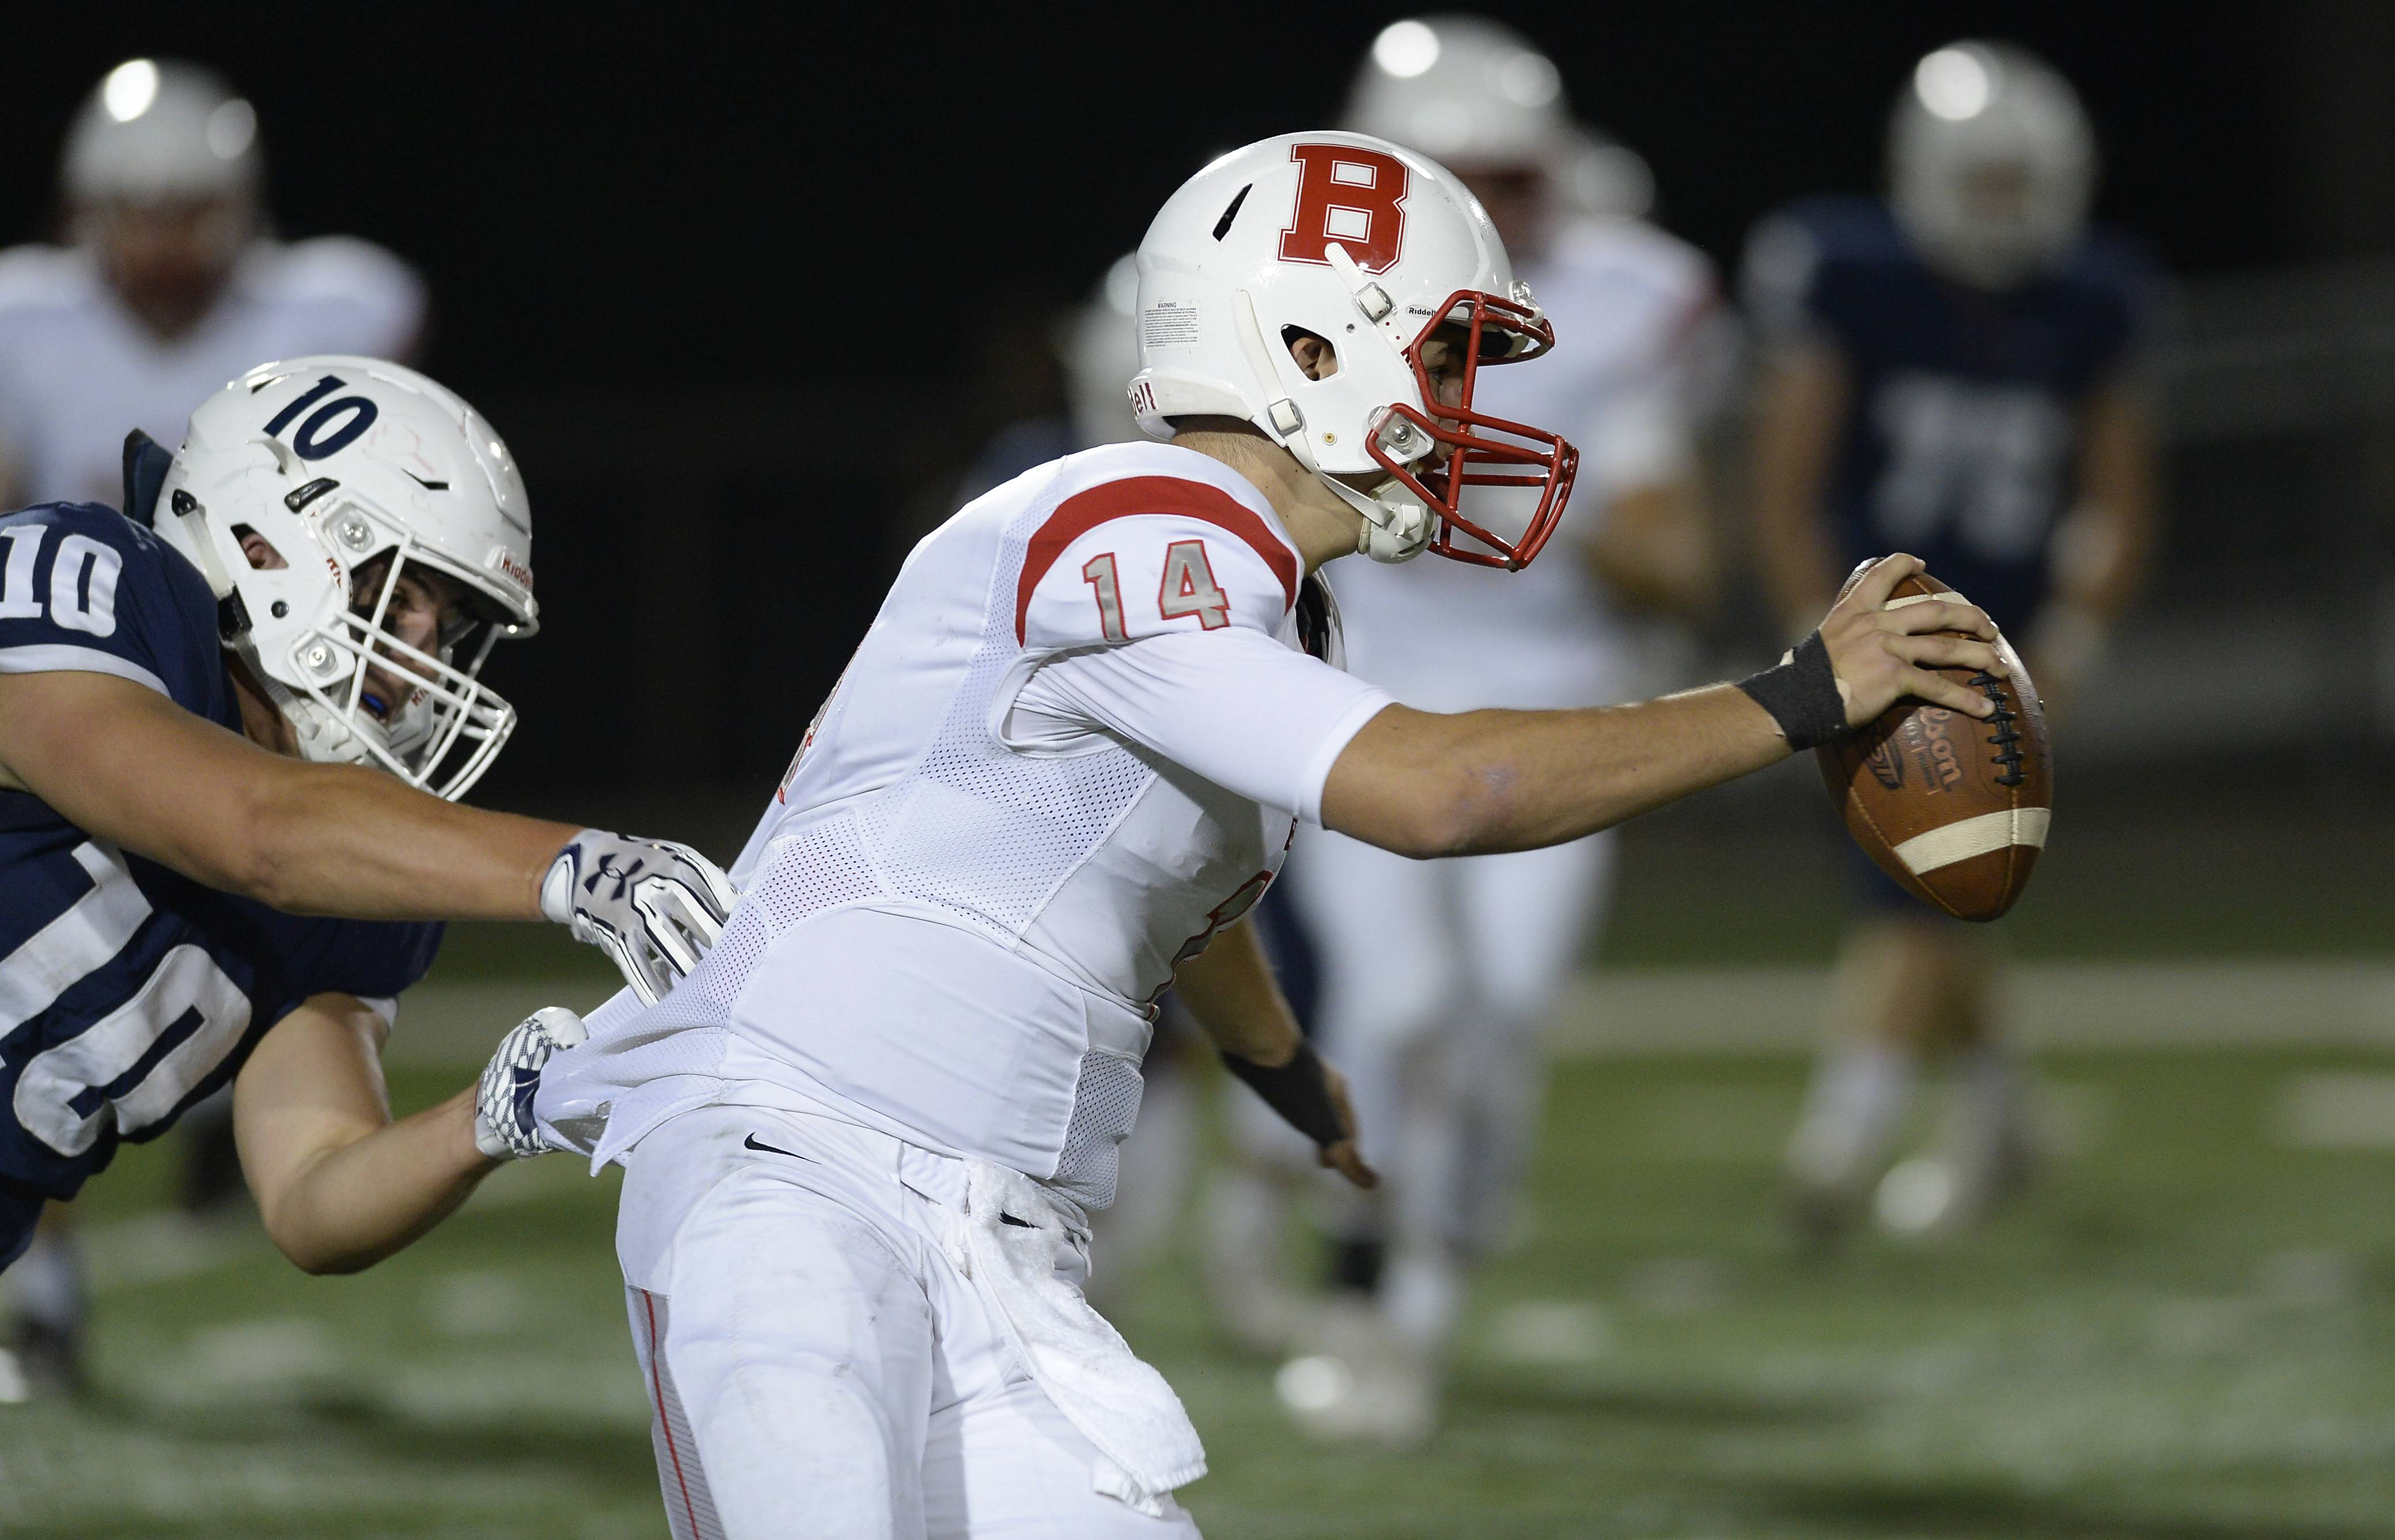 St. Viator's Niko Weder drags down Benet Academy's quarterback Matthew Boyle for a first-half sack Friday in Arlington Heights.